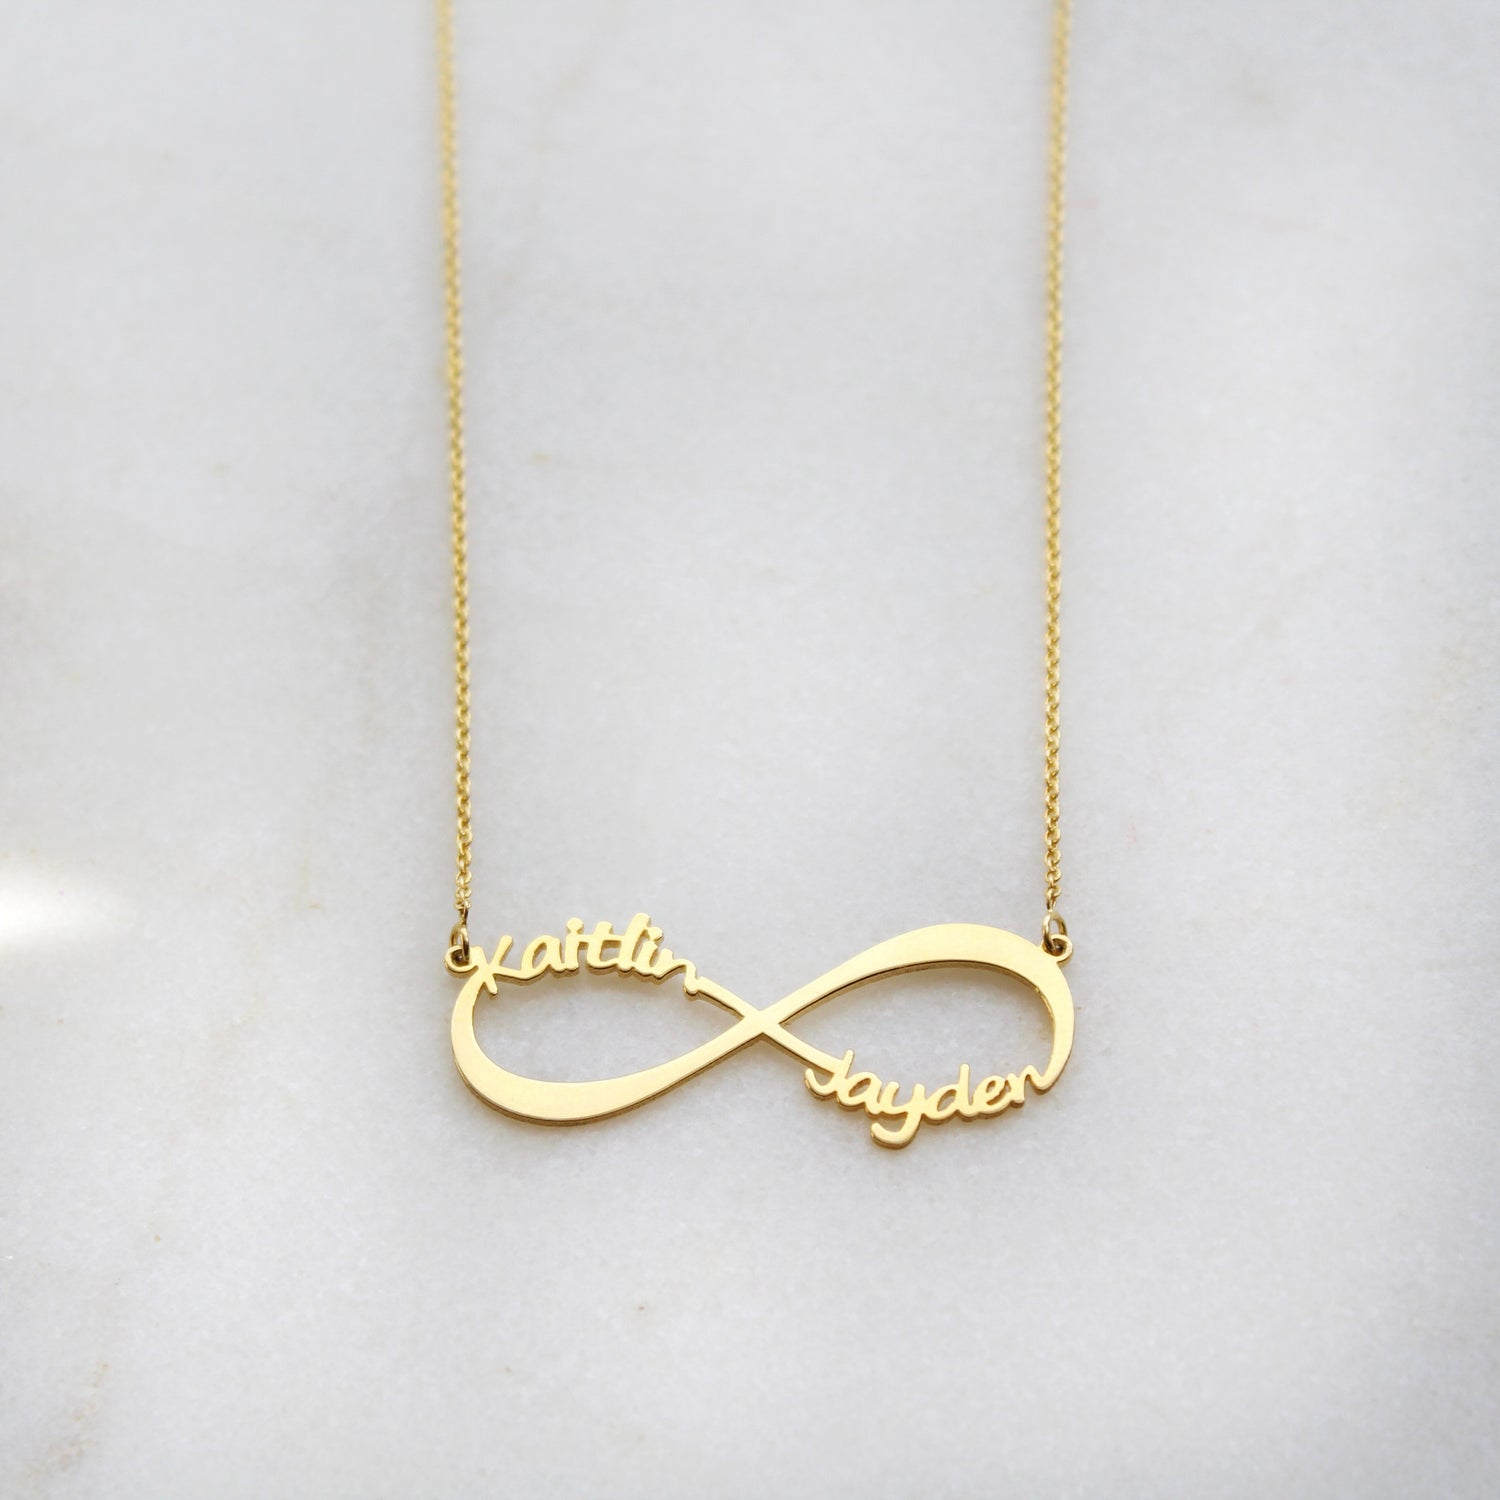 Kimiya Jewelers Personalizable Infinity Necklace